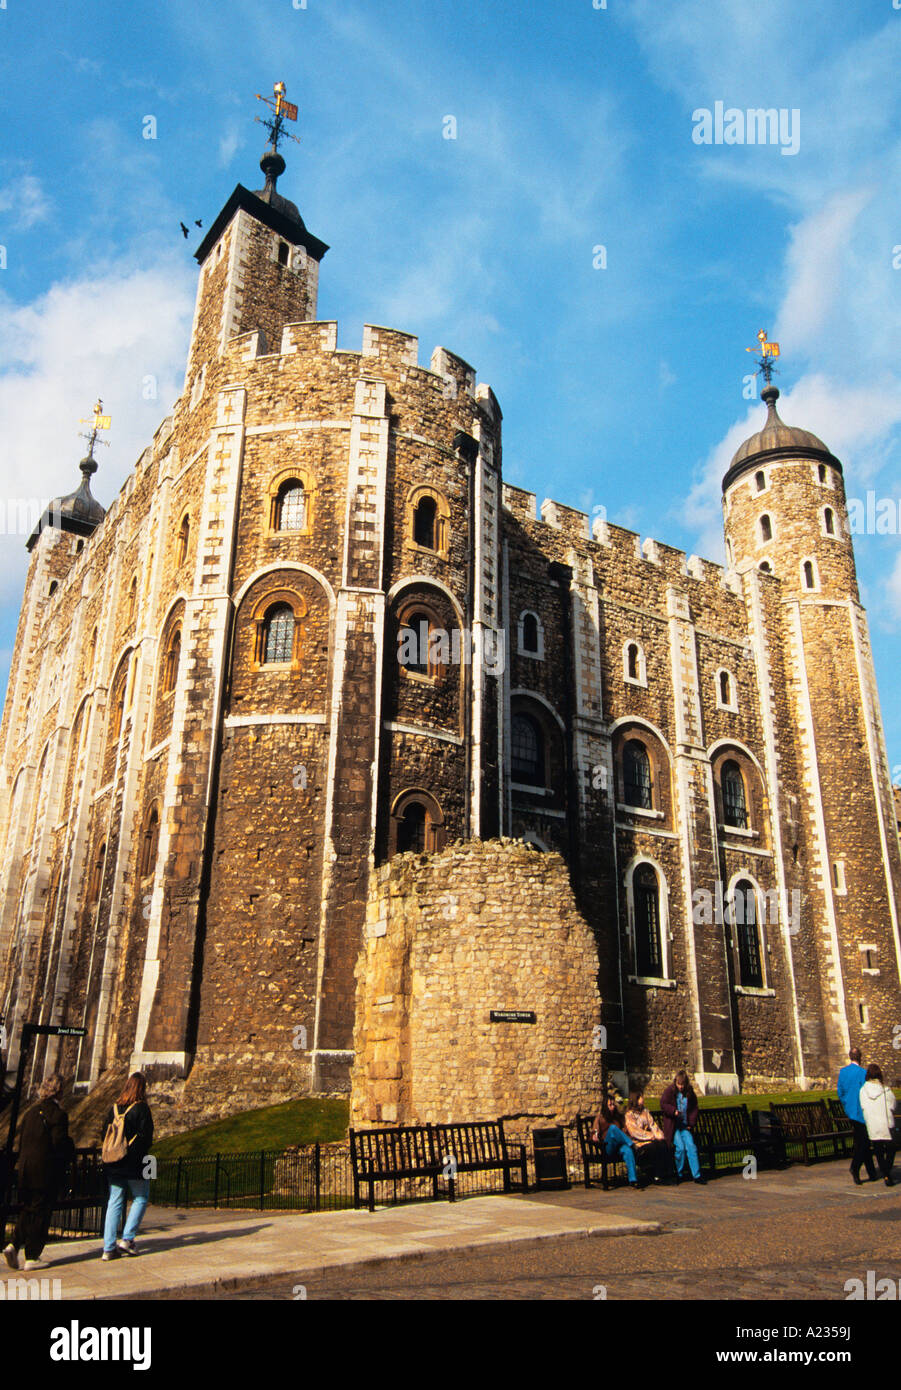 UK London England United Kingdom The Tower of London Building Historic Fortress Fortification and Prison Europe - Stock Image